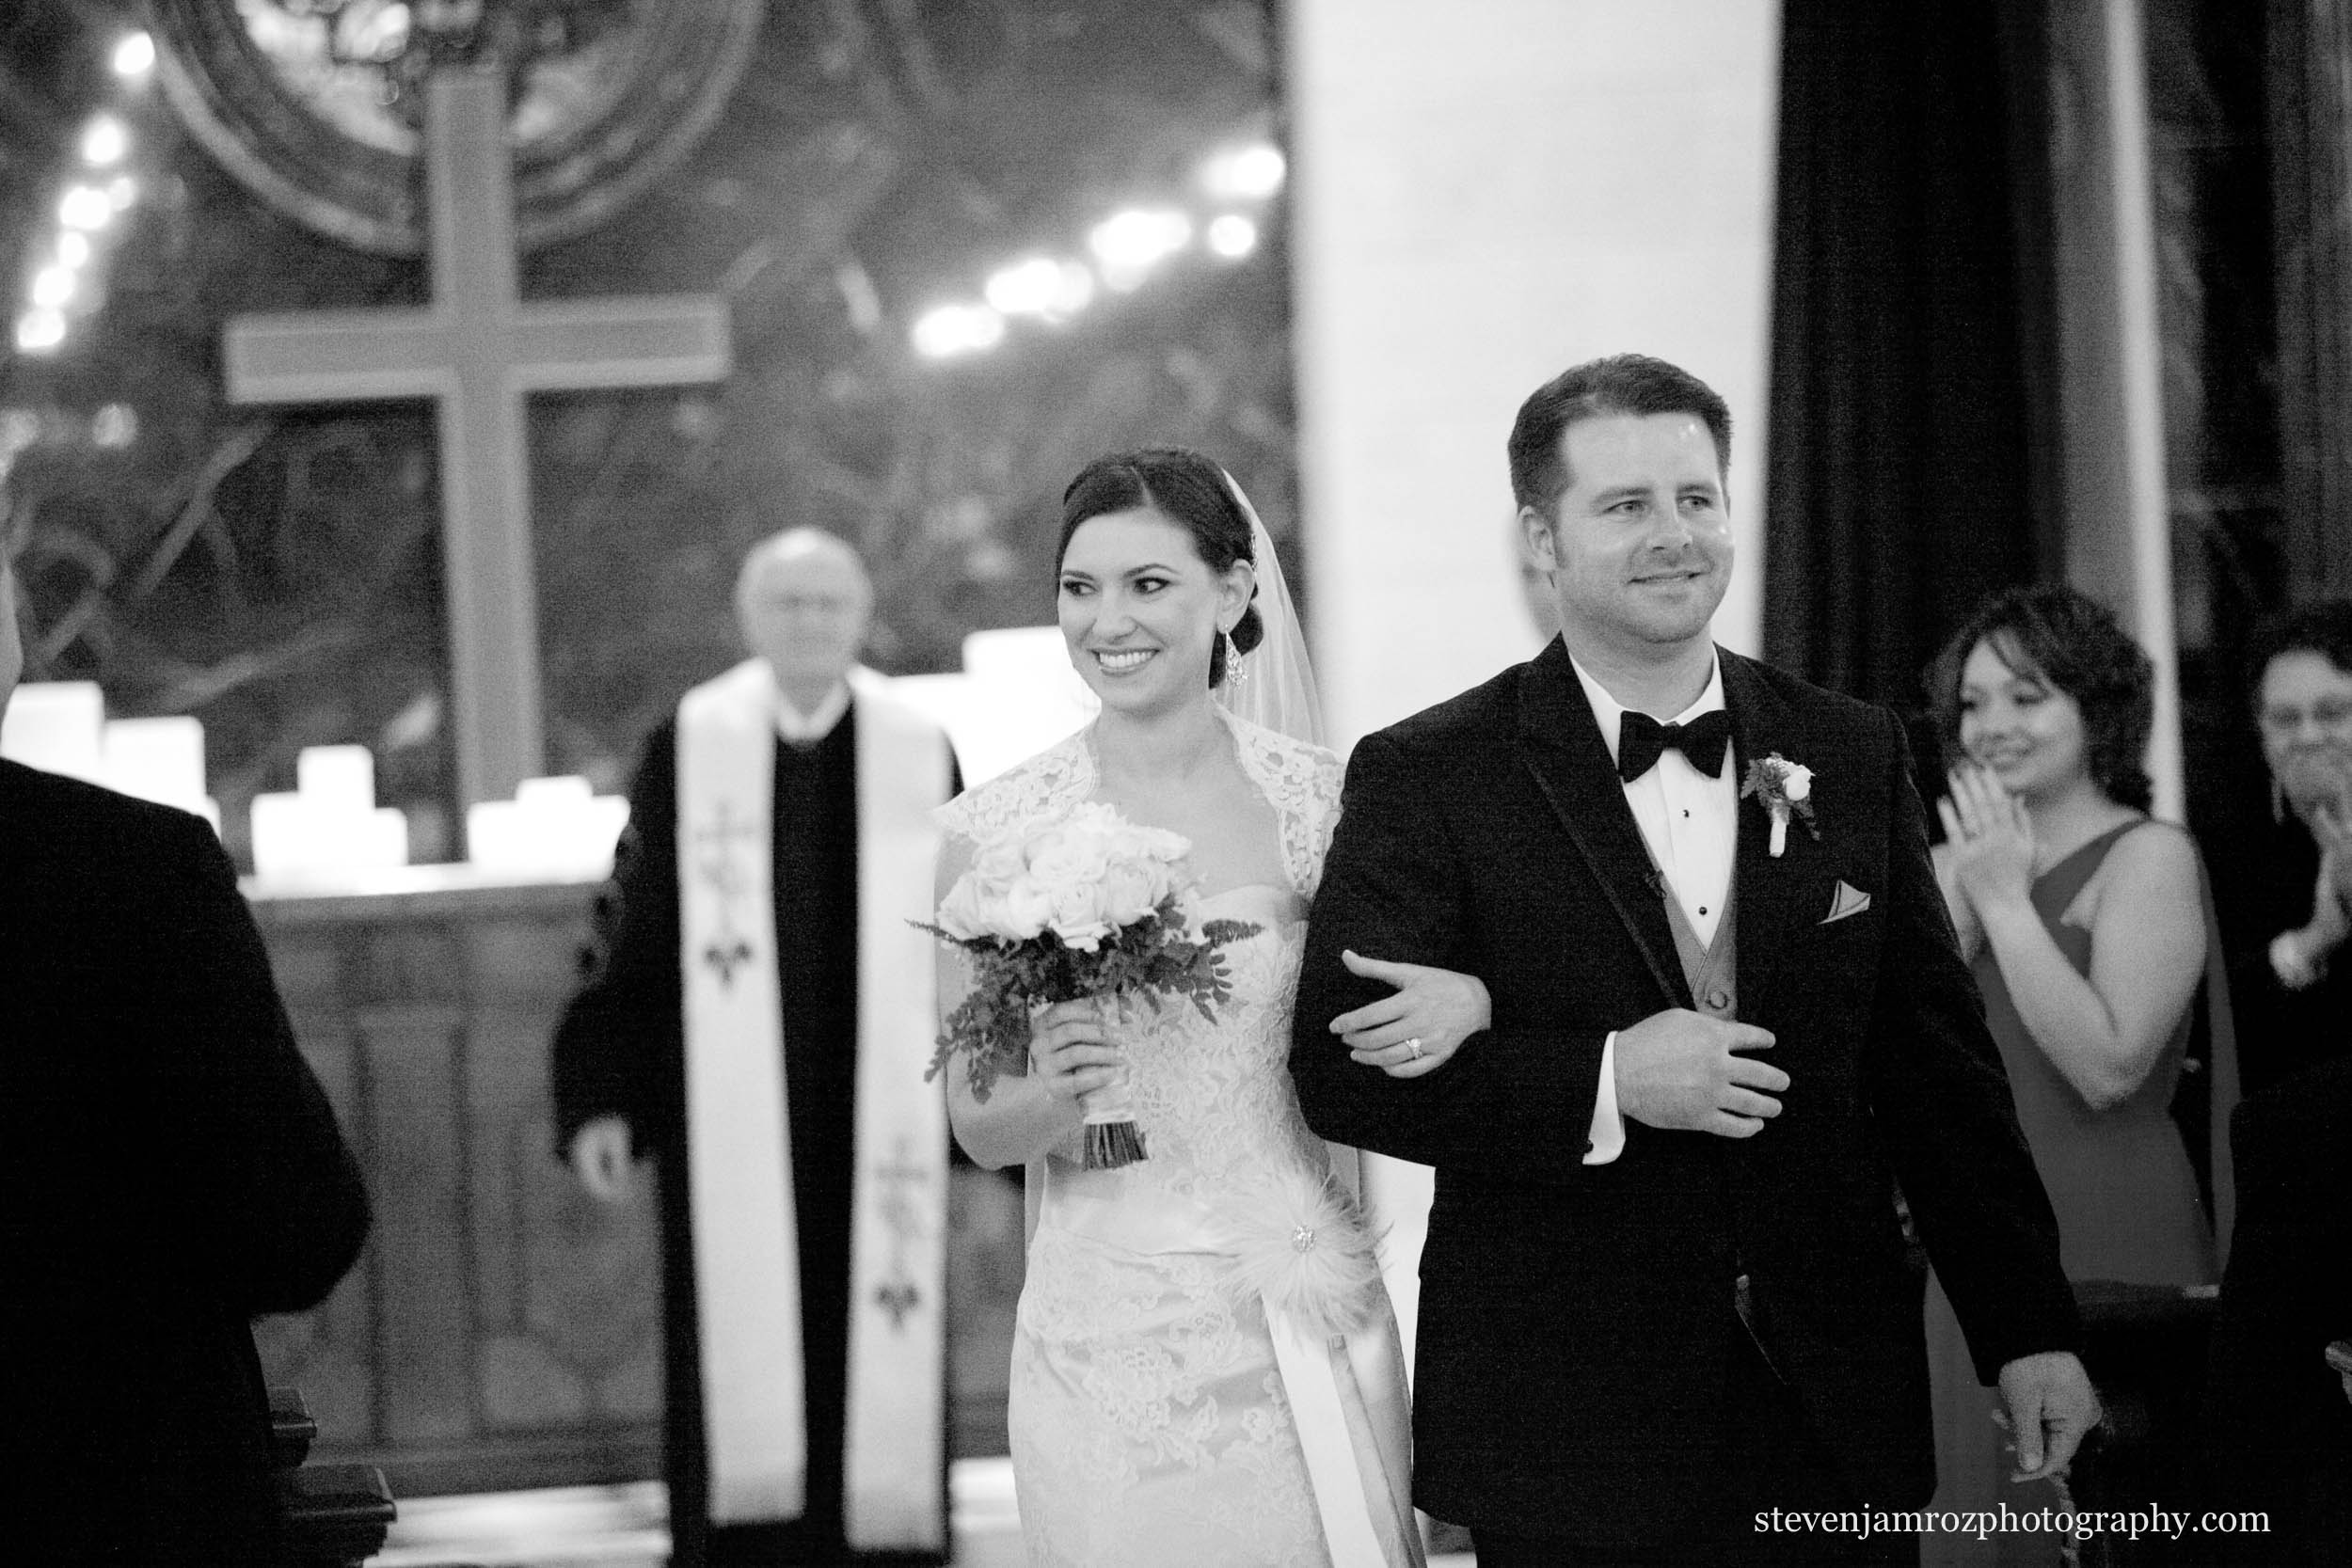 dark-church-wedding-raleigh-nc-steven-jamroz-photography-0035.jpg